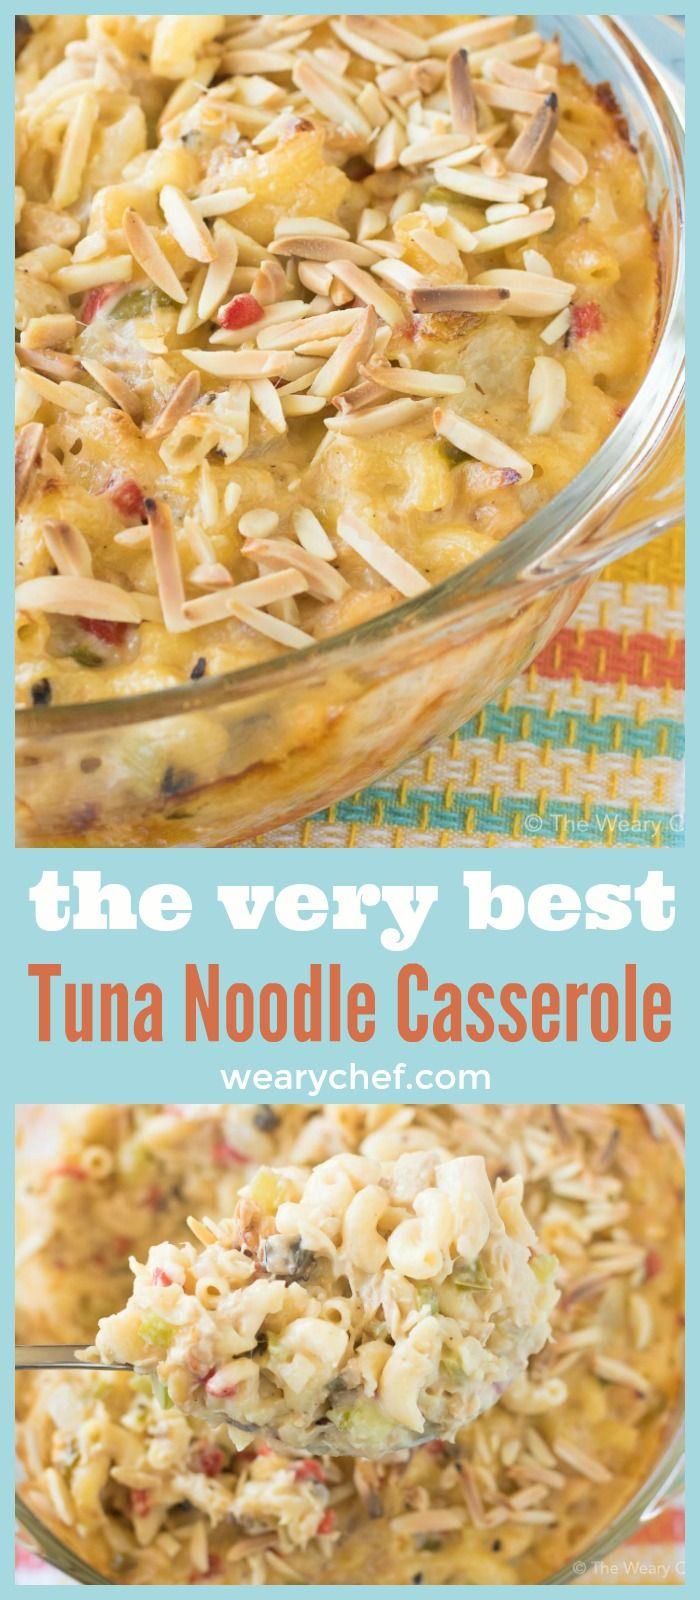 Easy Tuna Noodle Casserole really is the best! Classic comfort food to make you feel good inside and out.